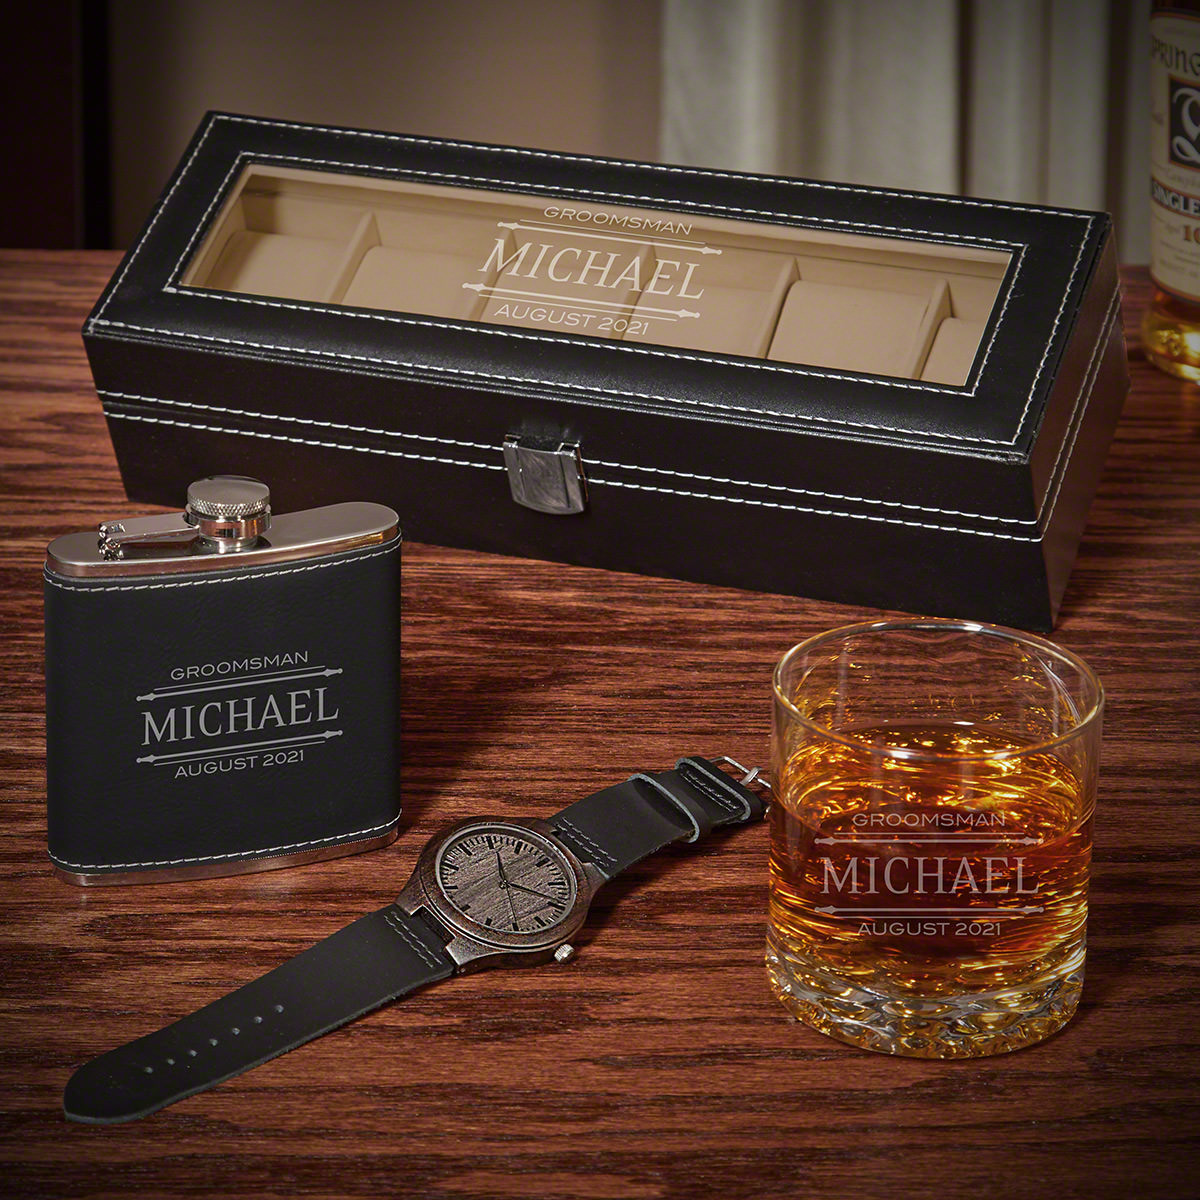 Stanford Personalized Watch Case Set of Gift Ideas for Men